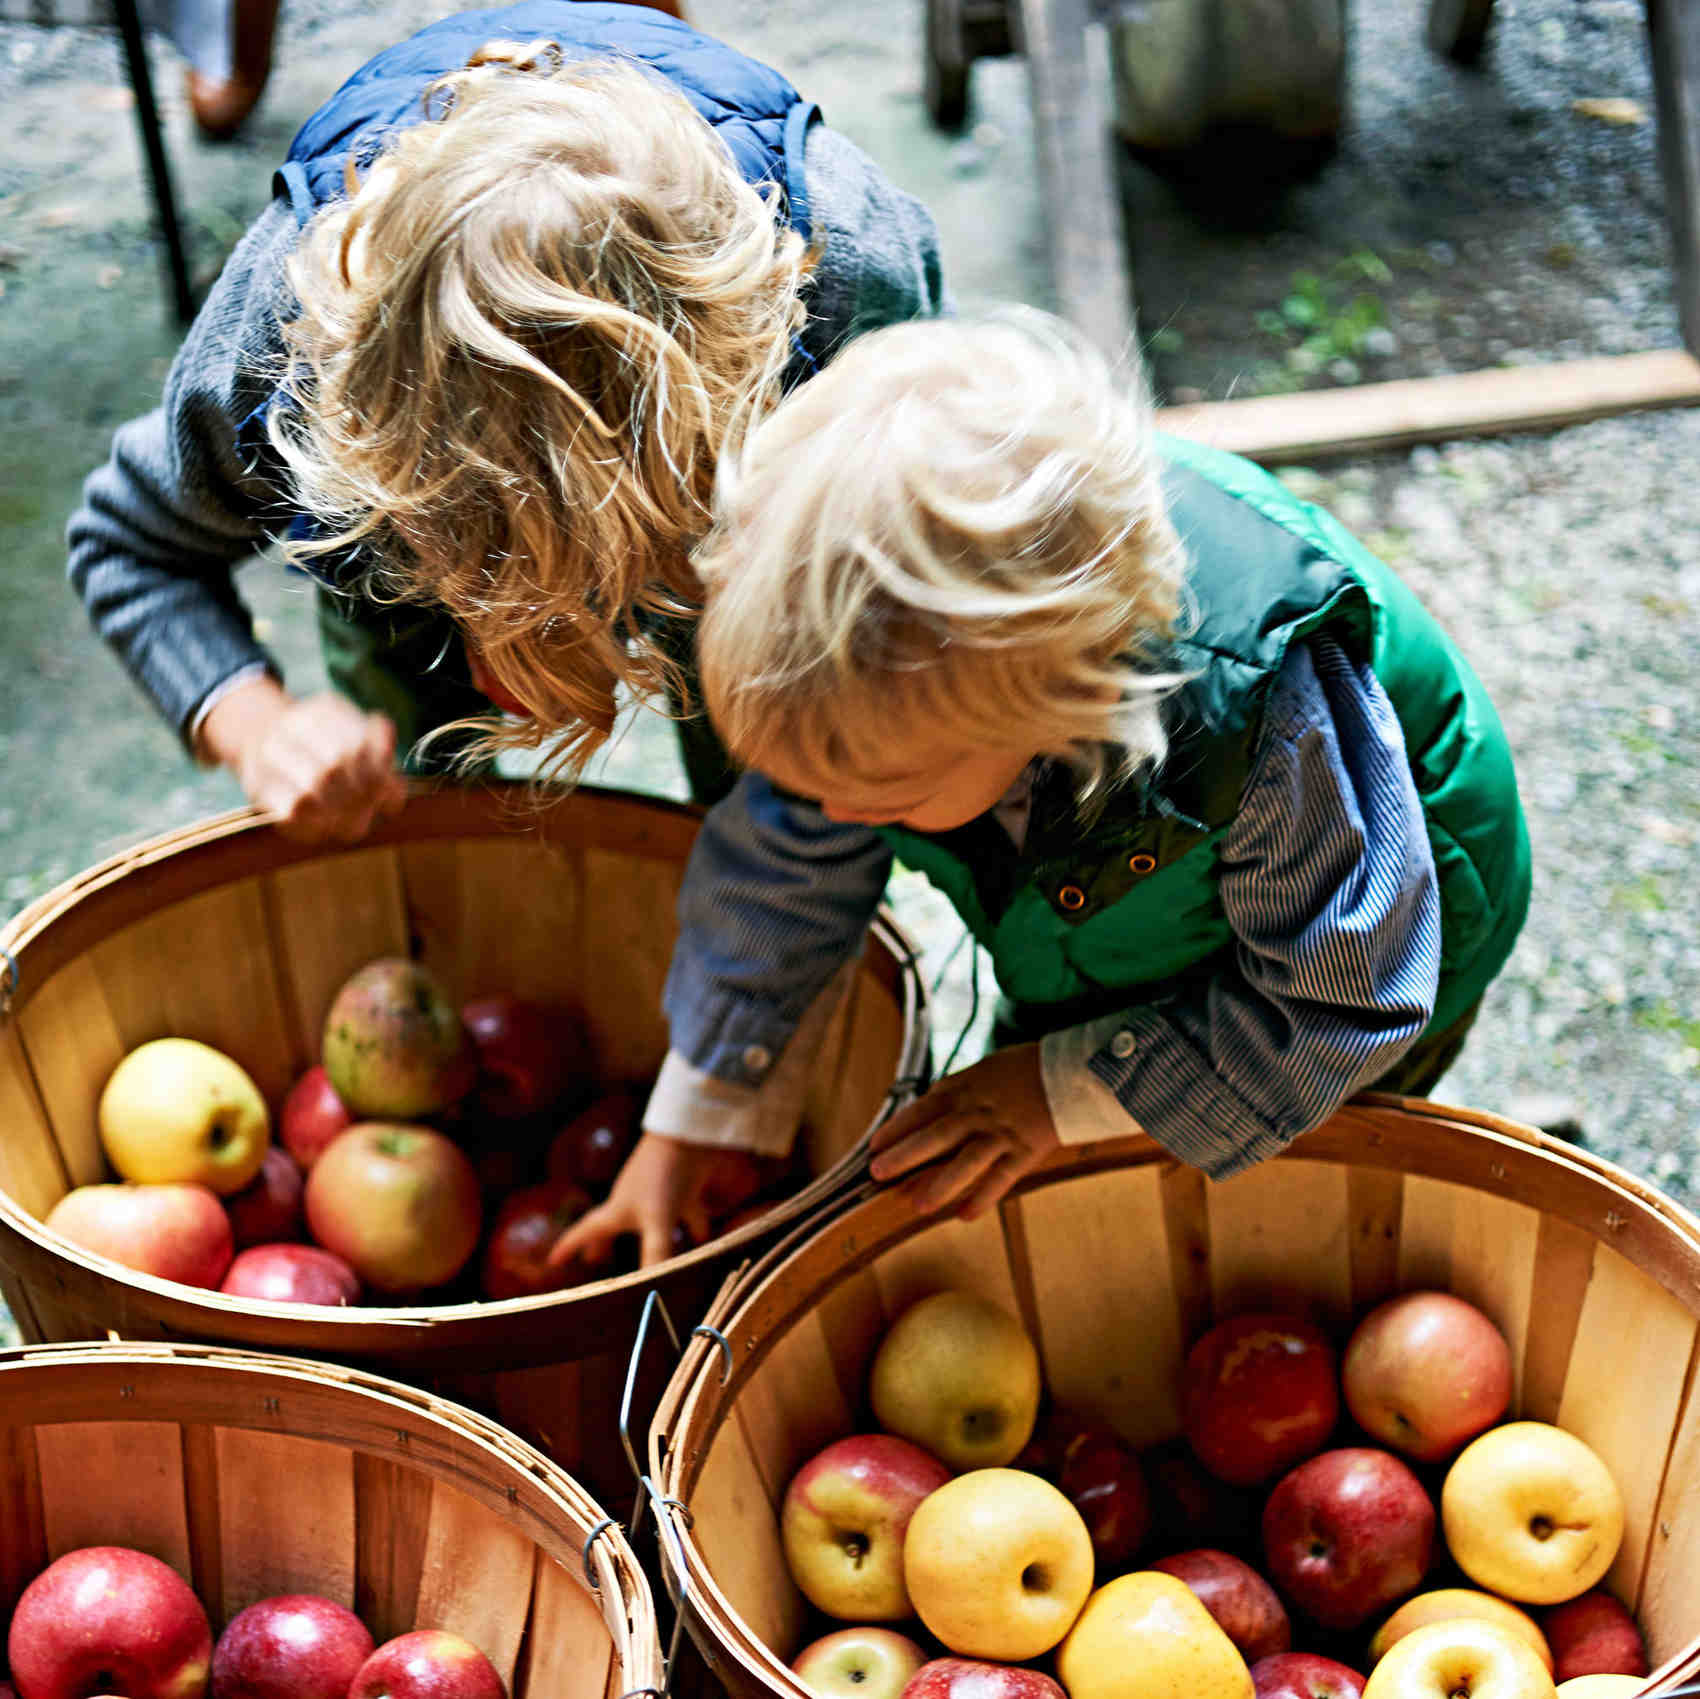 kids going through apple basket